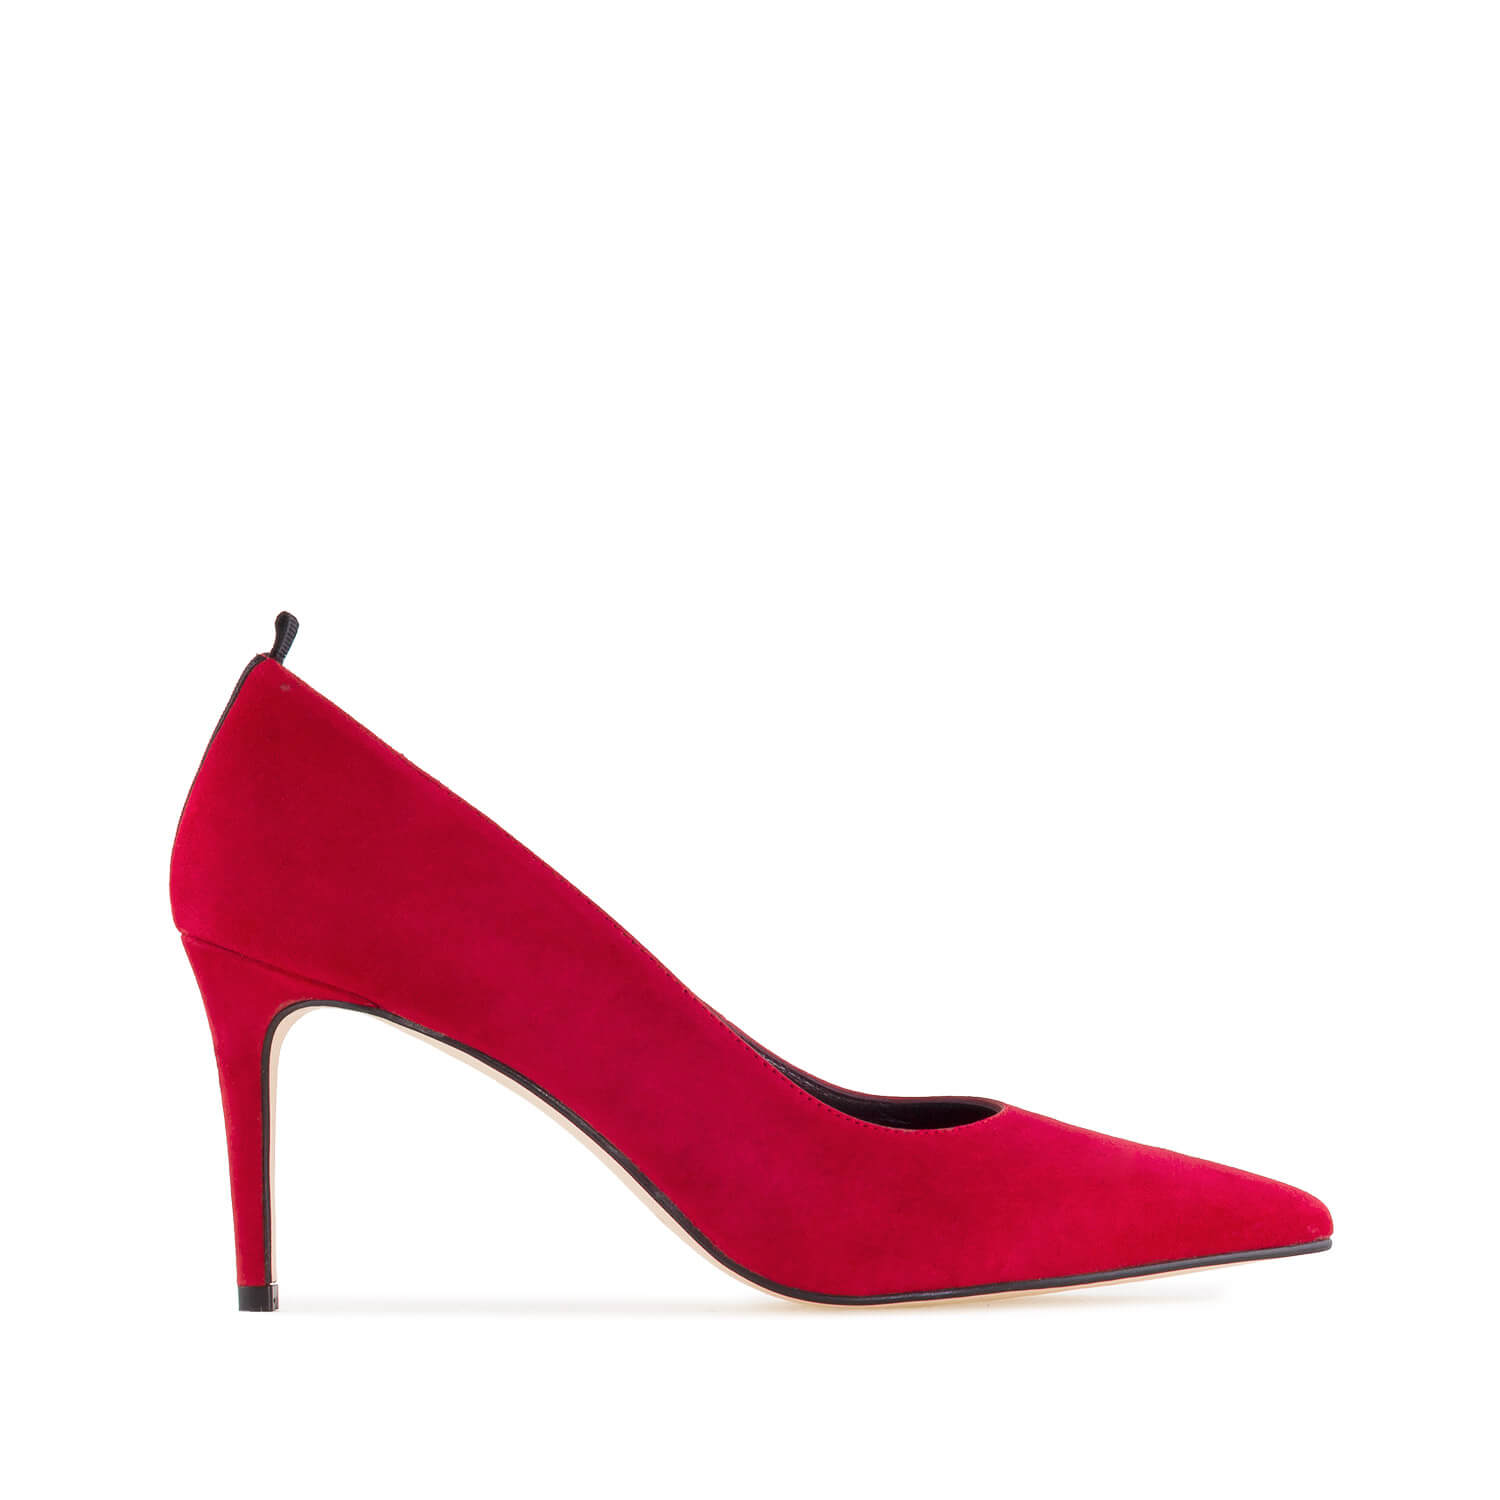 Stilettos in Red Suede Leather